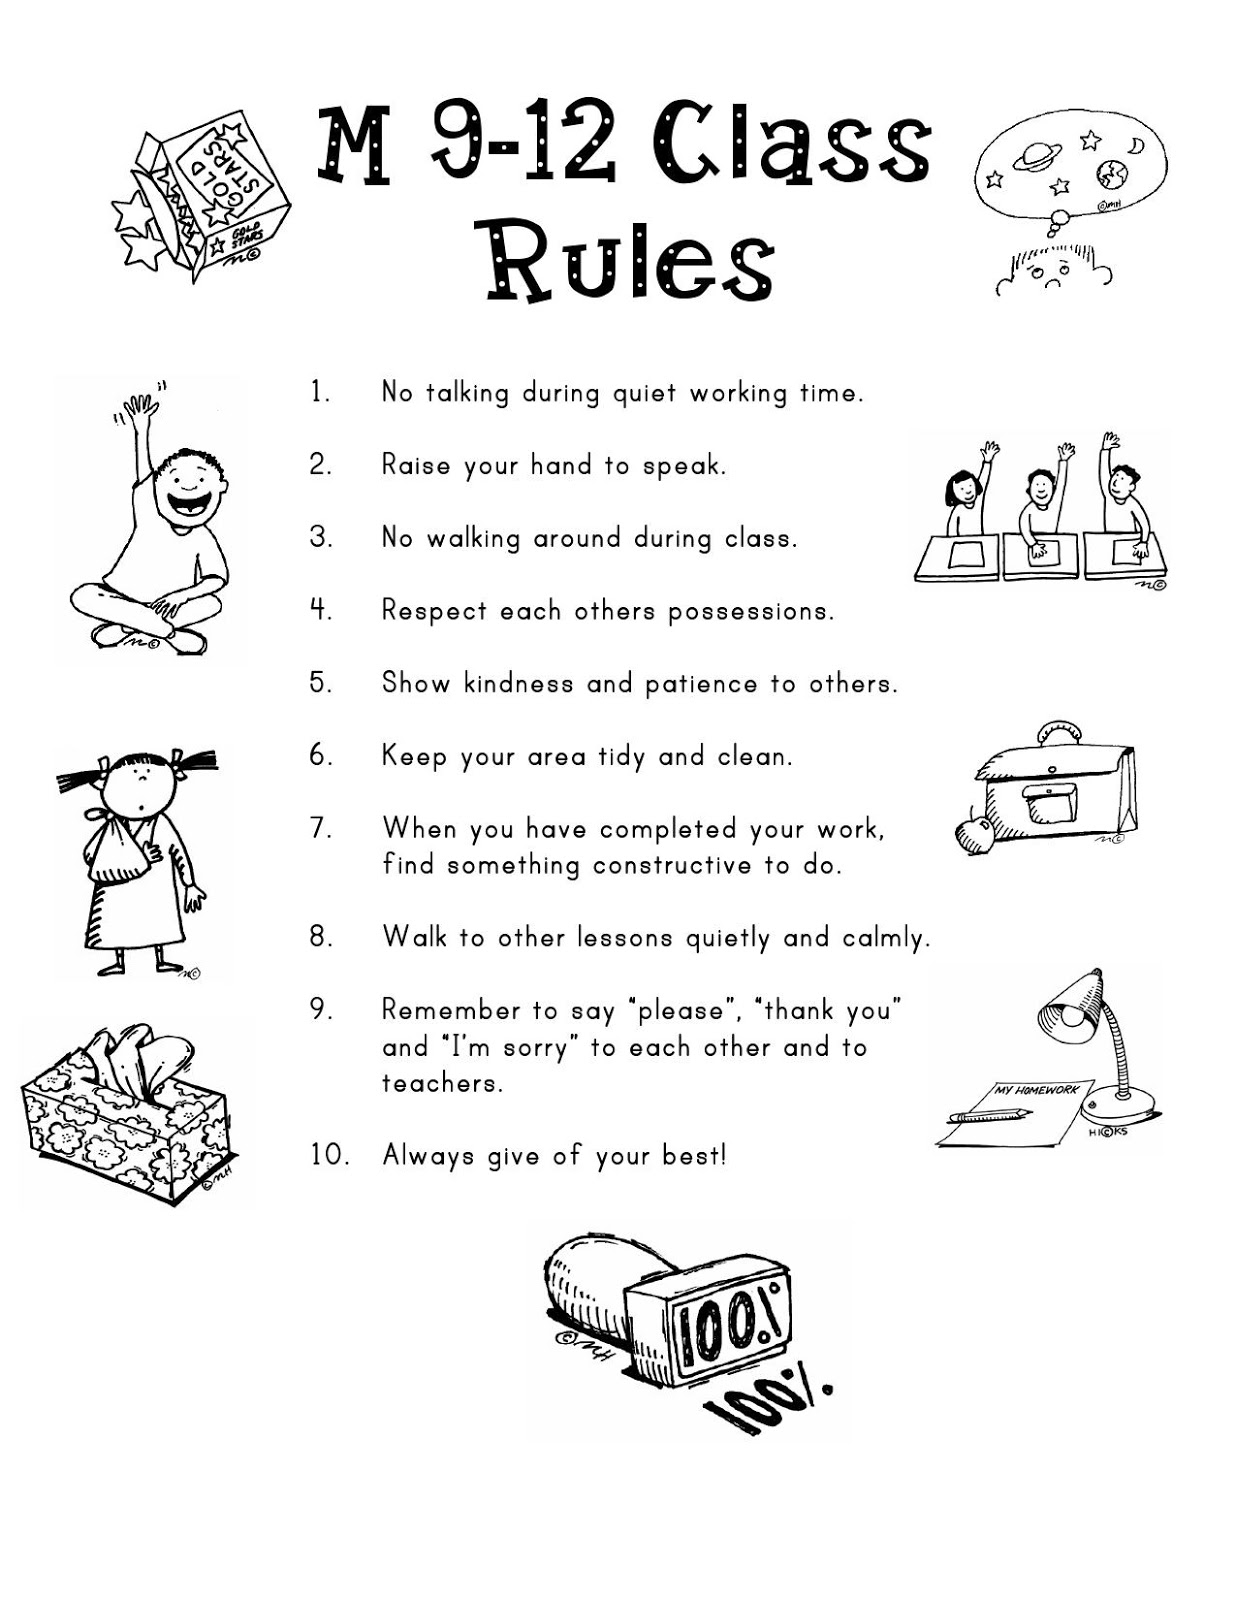 Clip Art Classroom Rules Coloring Pages miss tyler smiths montessori 9 12 class our first week of term 1 tuesday 22 january 2013